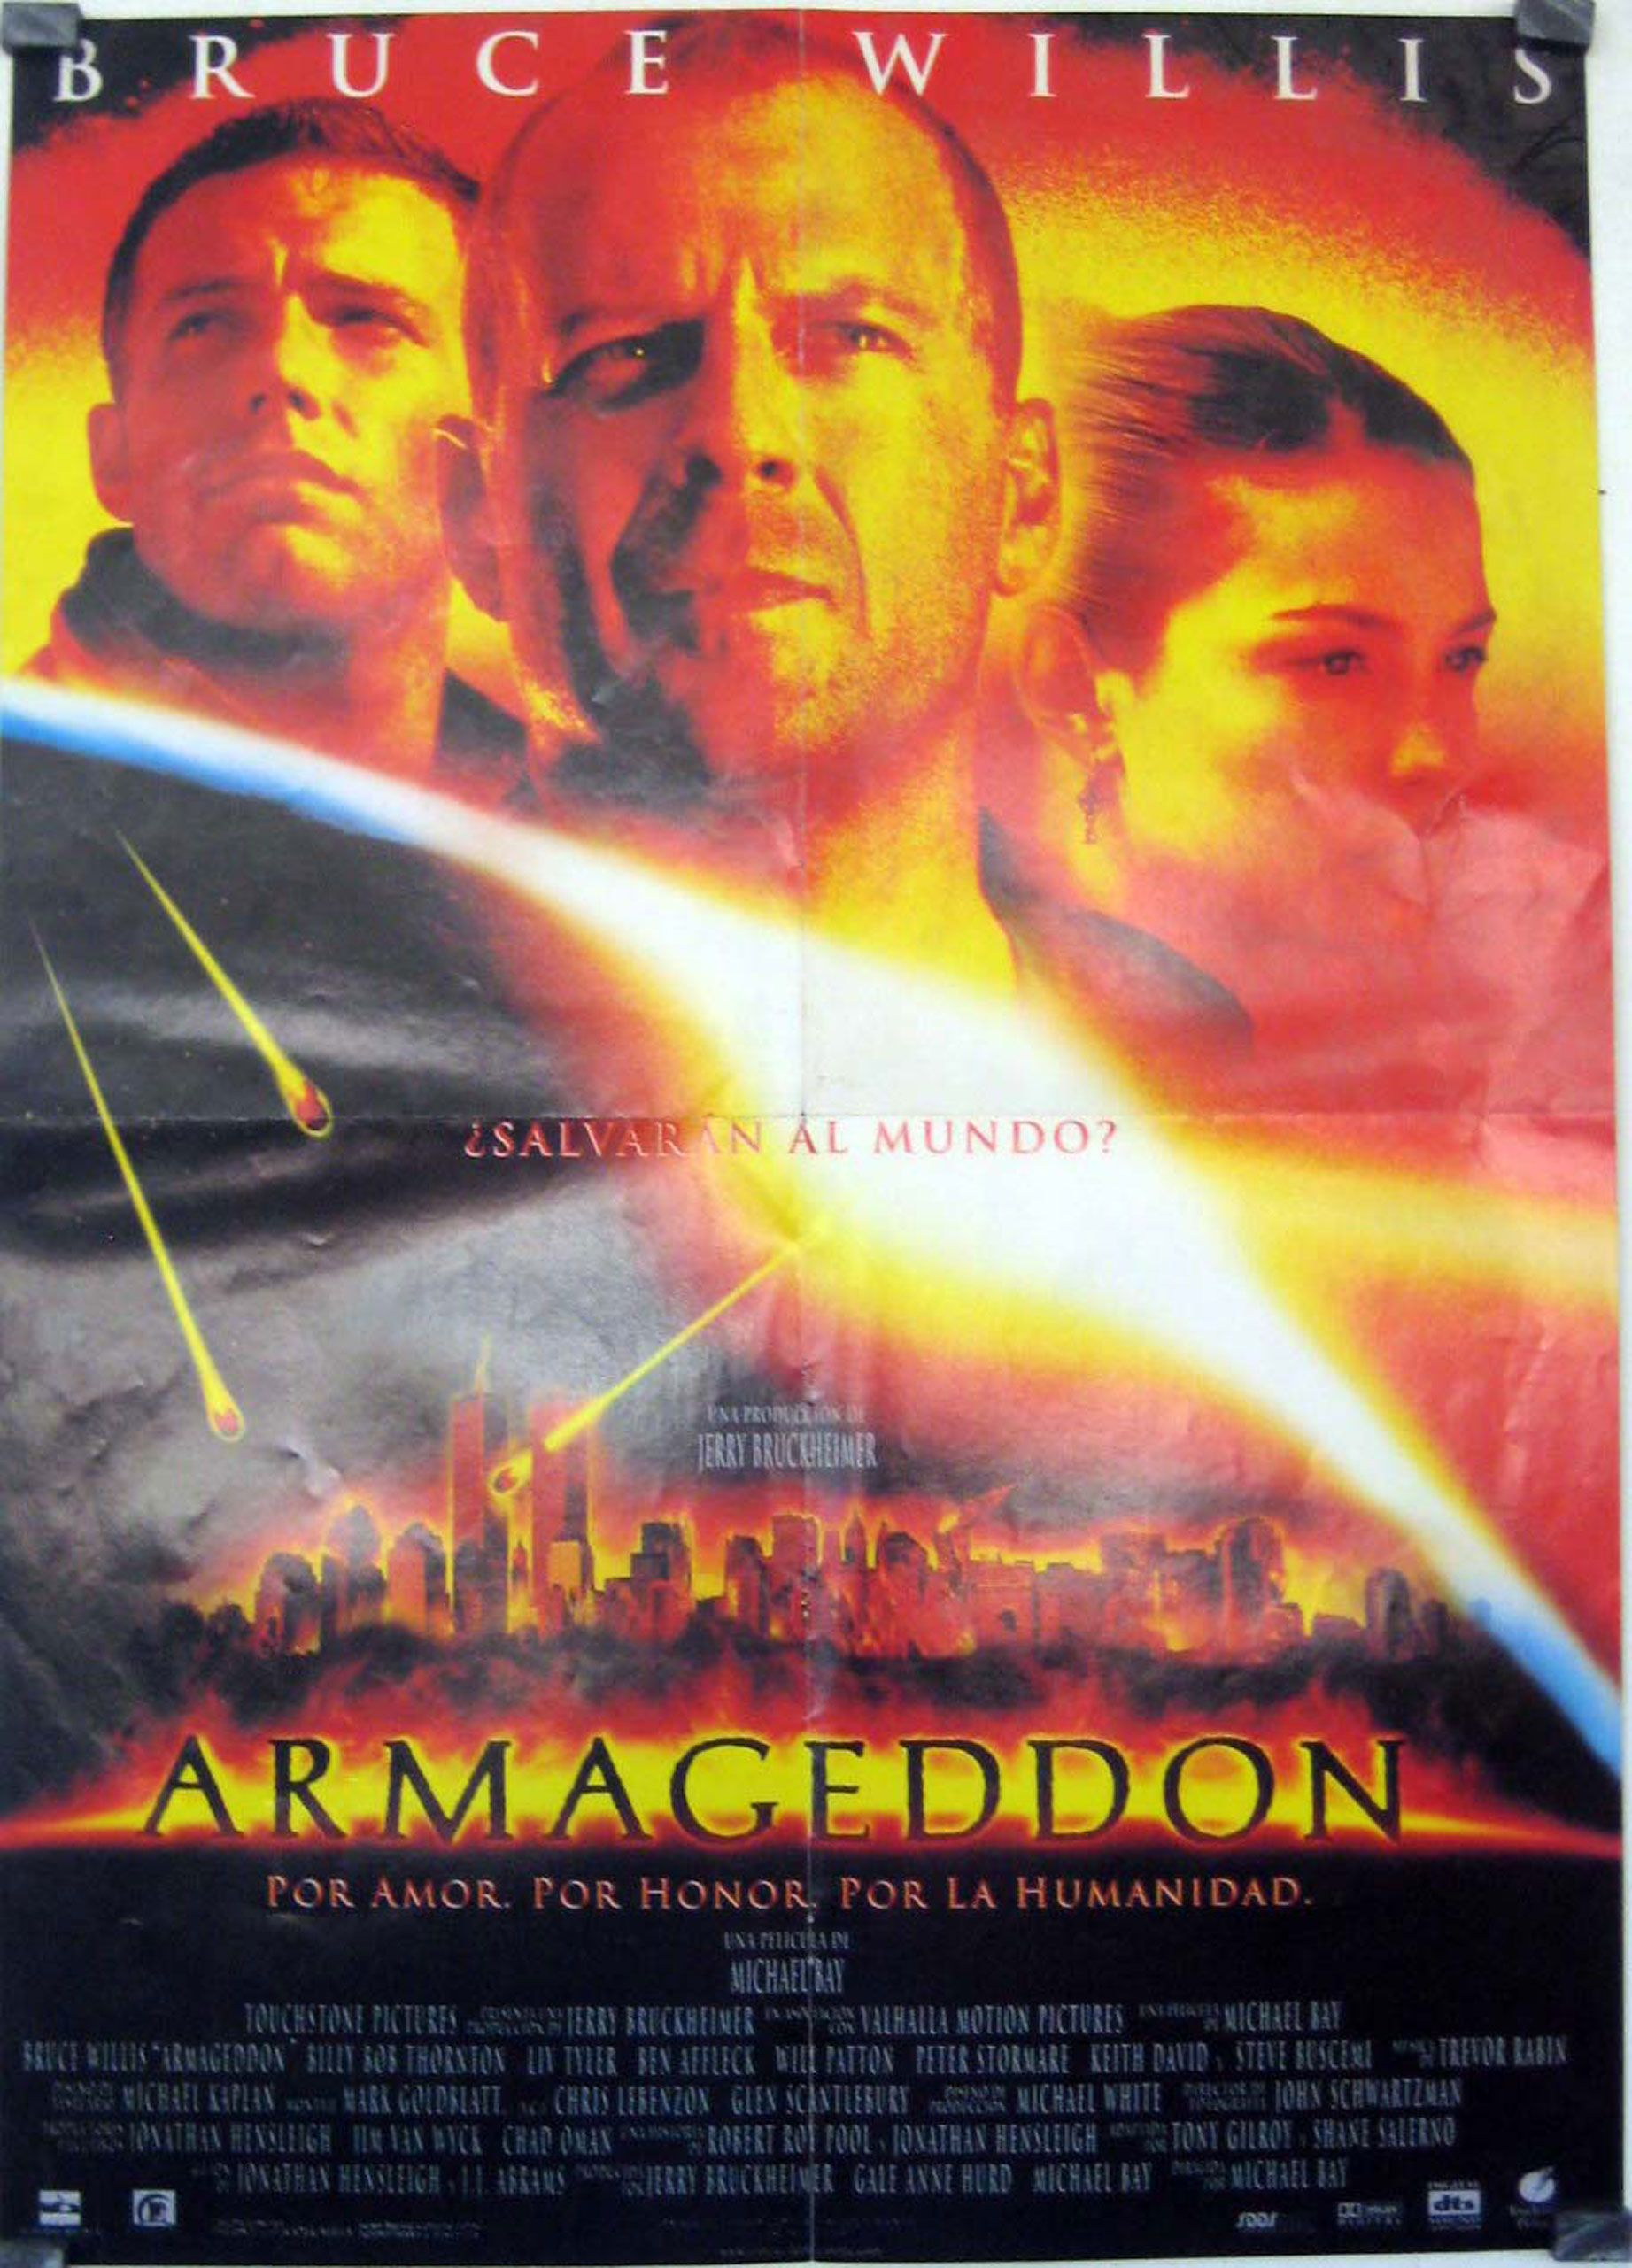 armageddon movie poster all time favorite movies pinterest